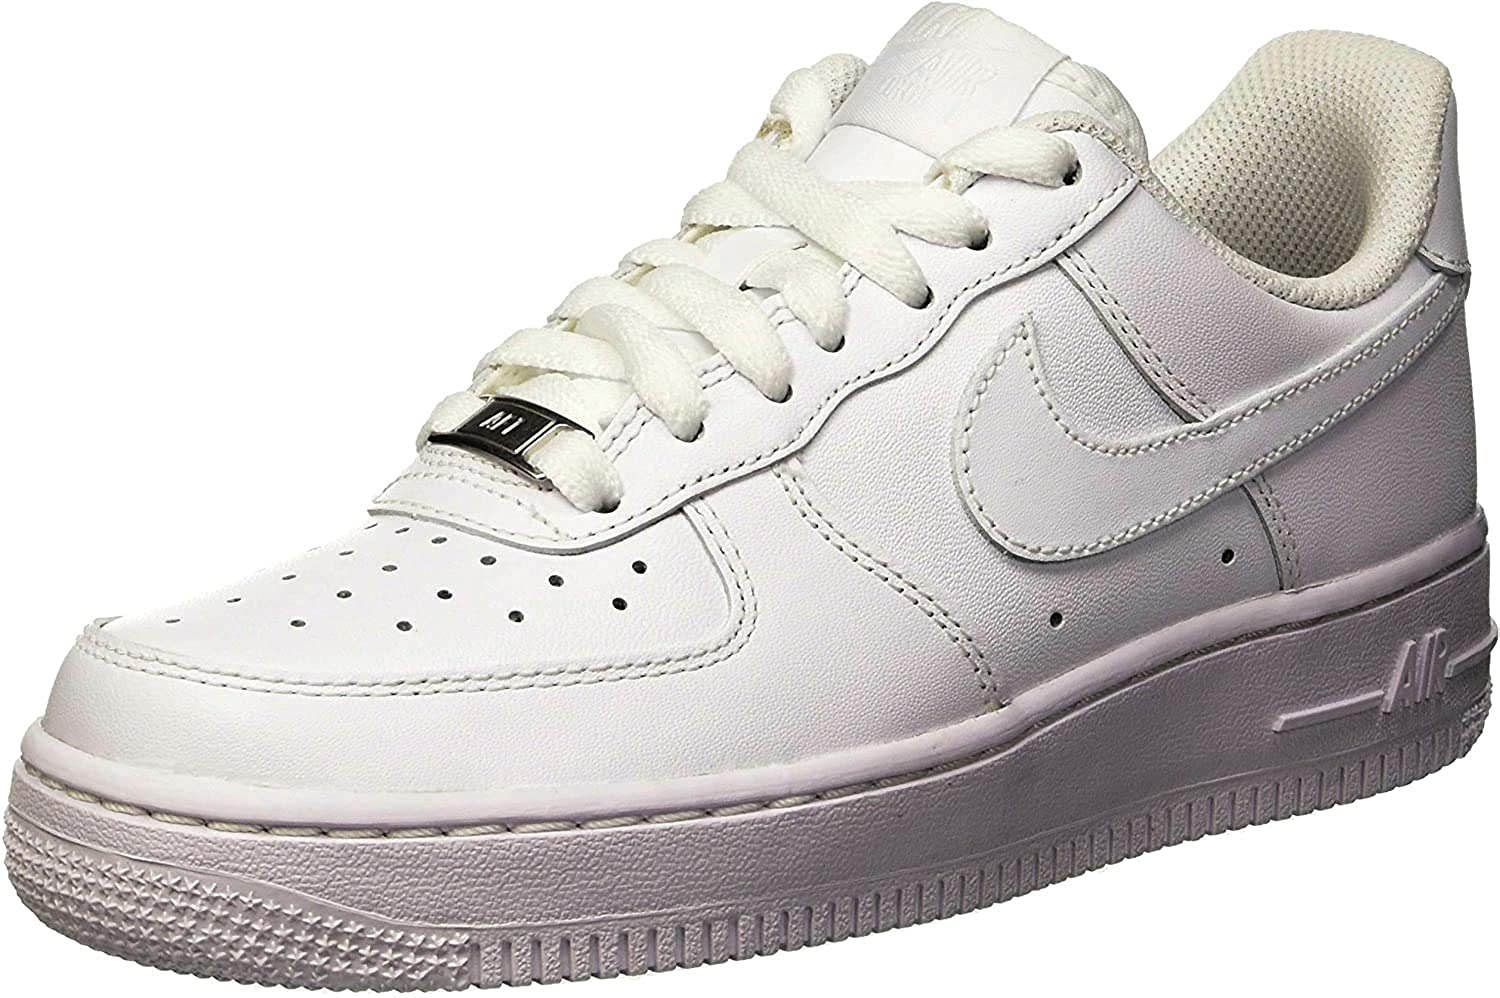 Womens Air Force 1 '07 by NIKE, available on revolve.com for $100 Hailey Baldwin Shoes Exact Product